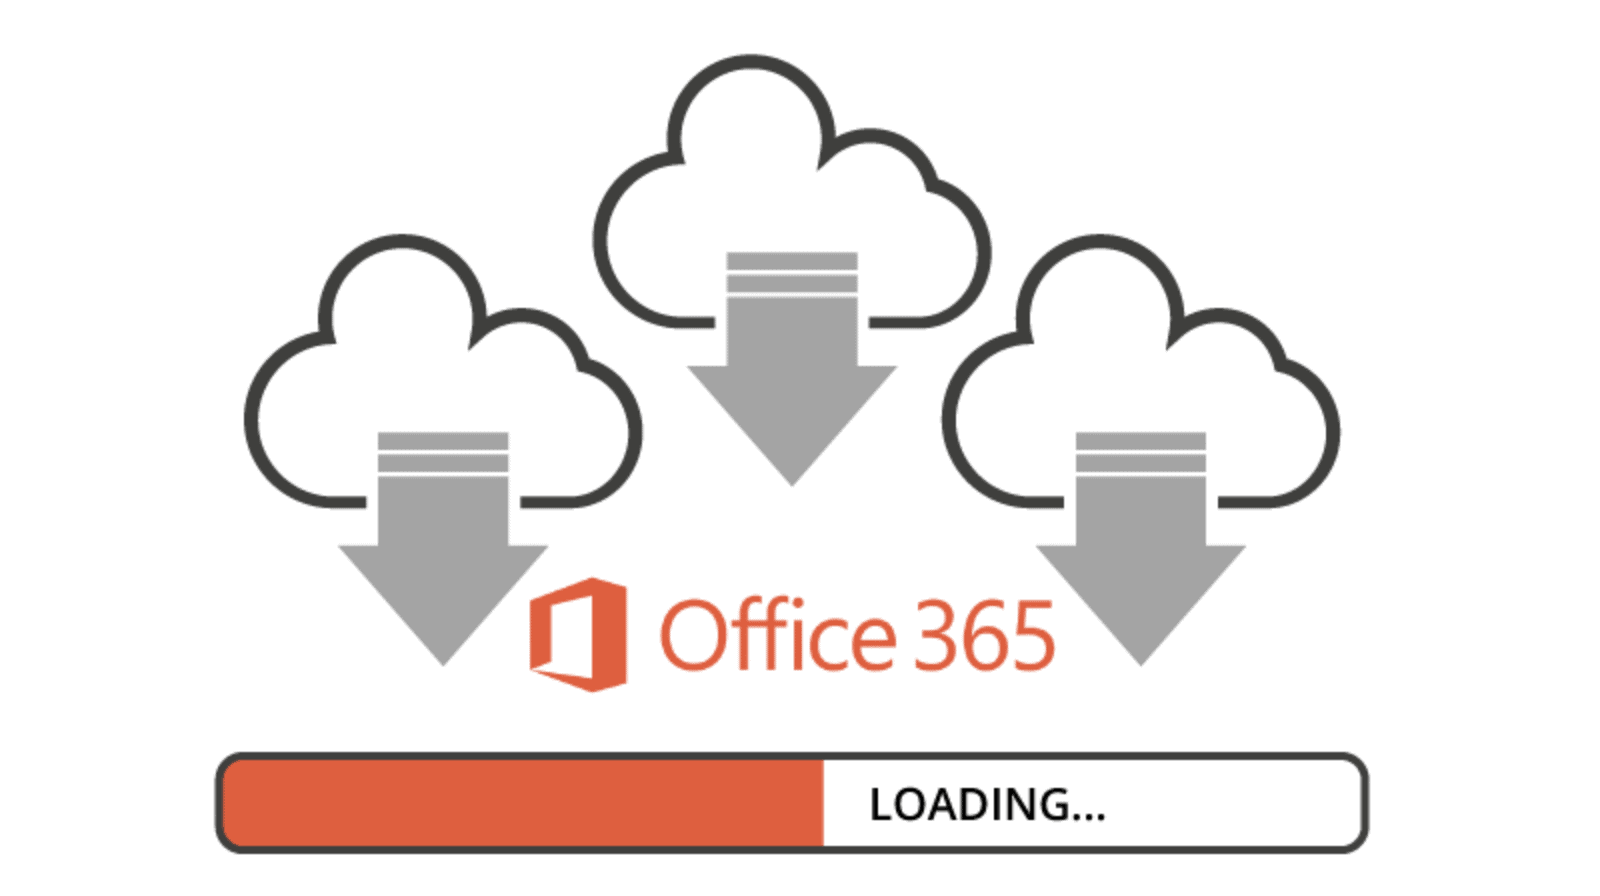 Solve these Office 365 security challenges